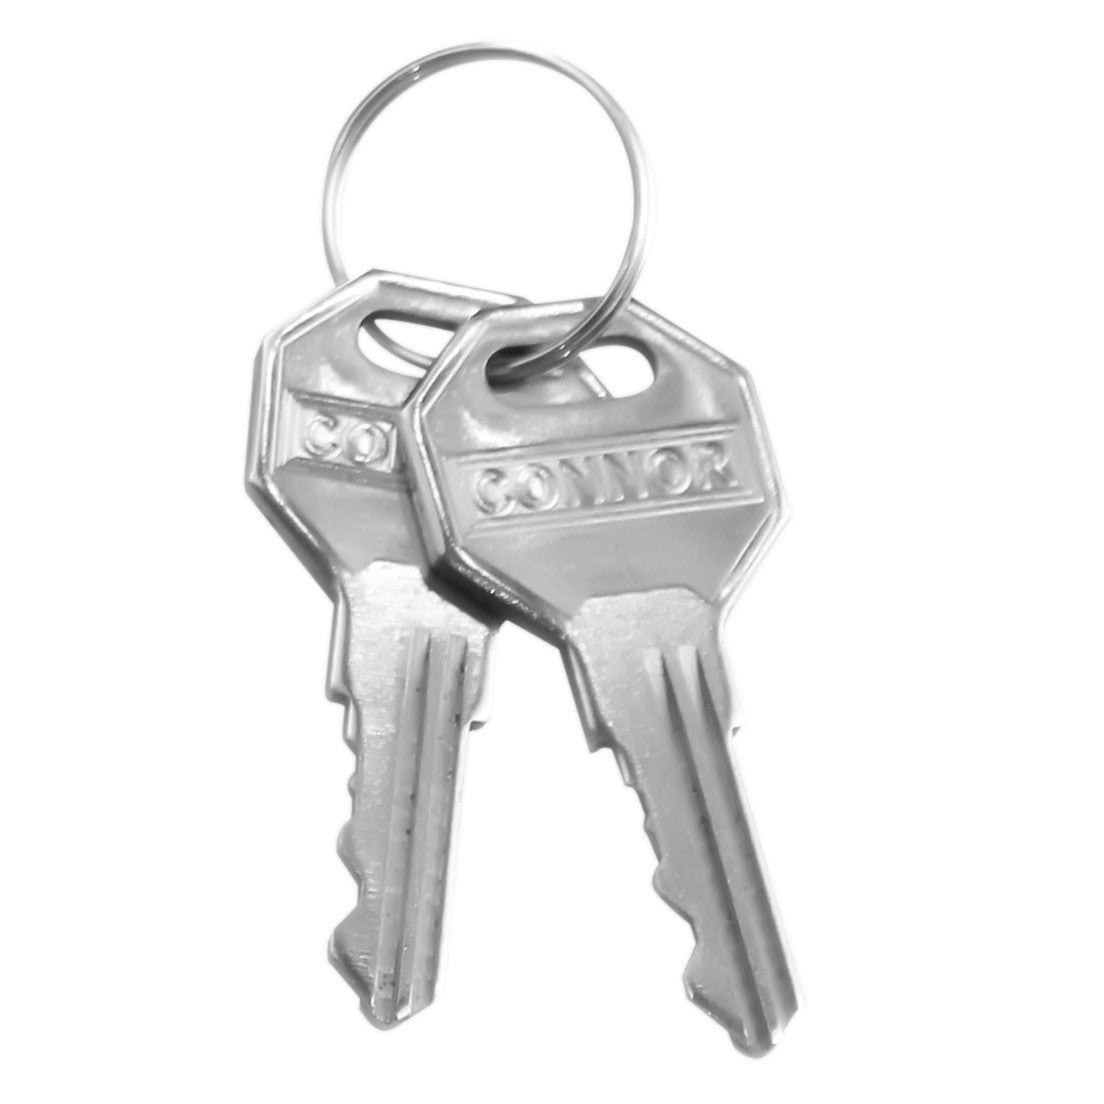 Keys For Connor Hitch Receiver Locks 1615100 1615130